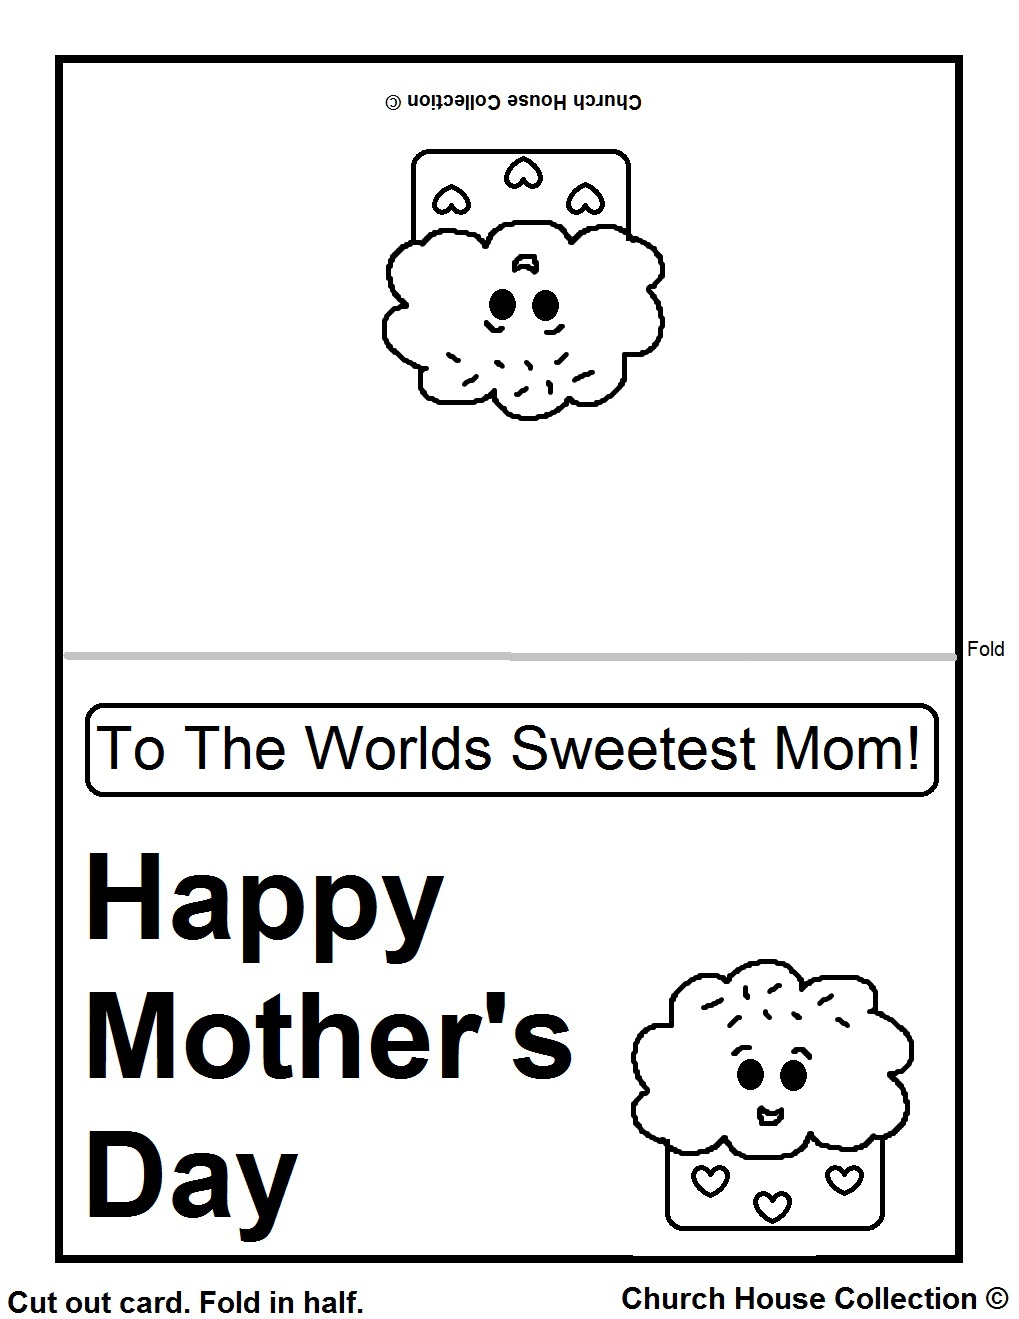 photo regarding Printable Mothers Day Cards to Color Pdf called Printable moms working day playing cards toward colour pdf